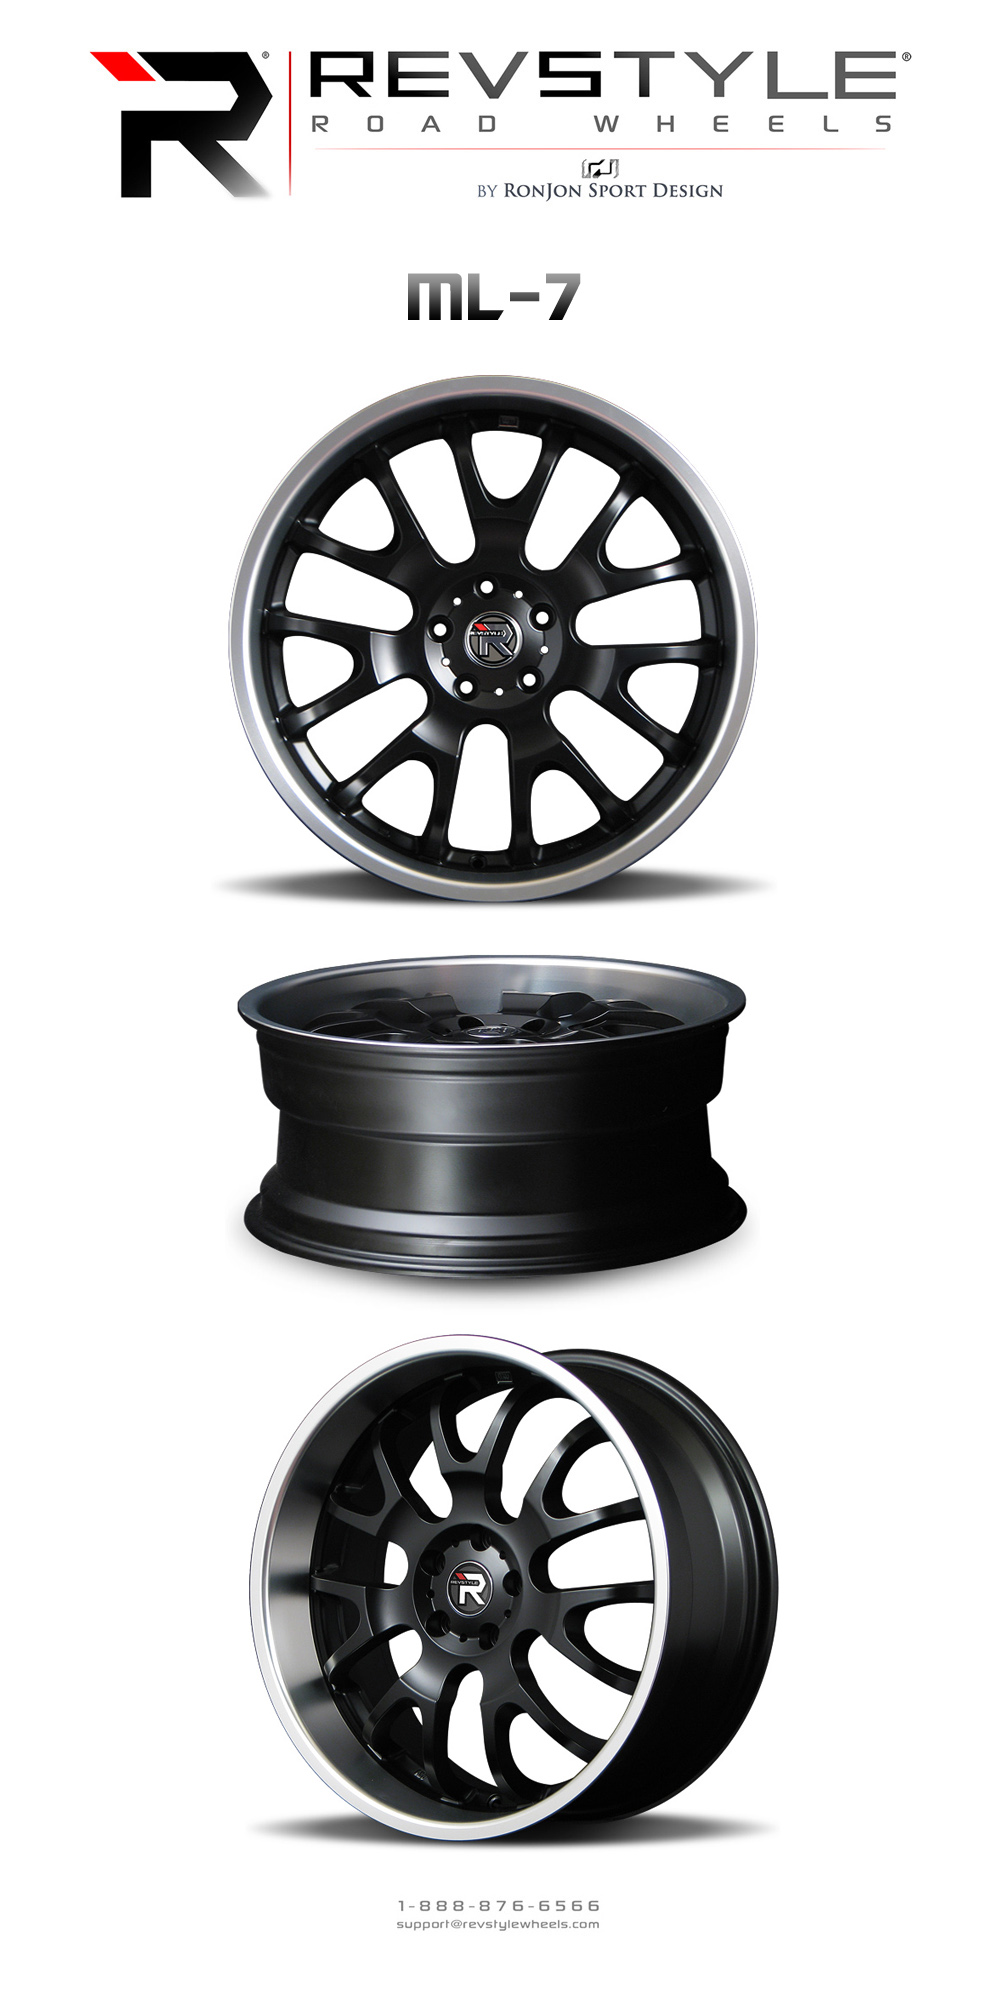 VW ML 7 wheel